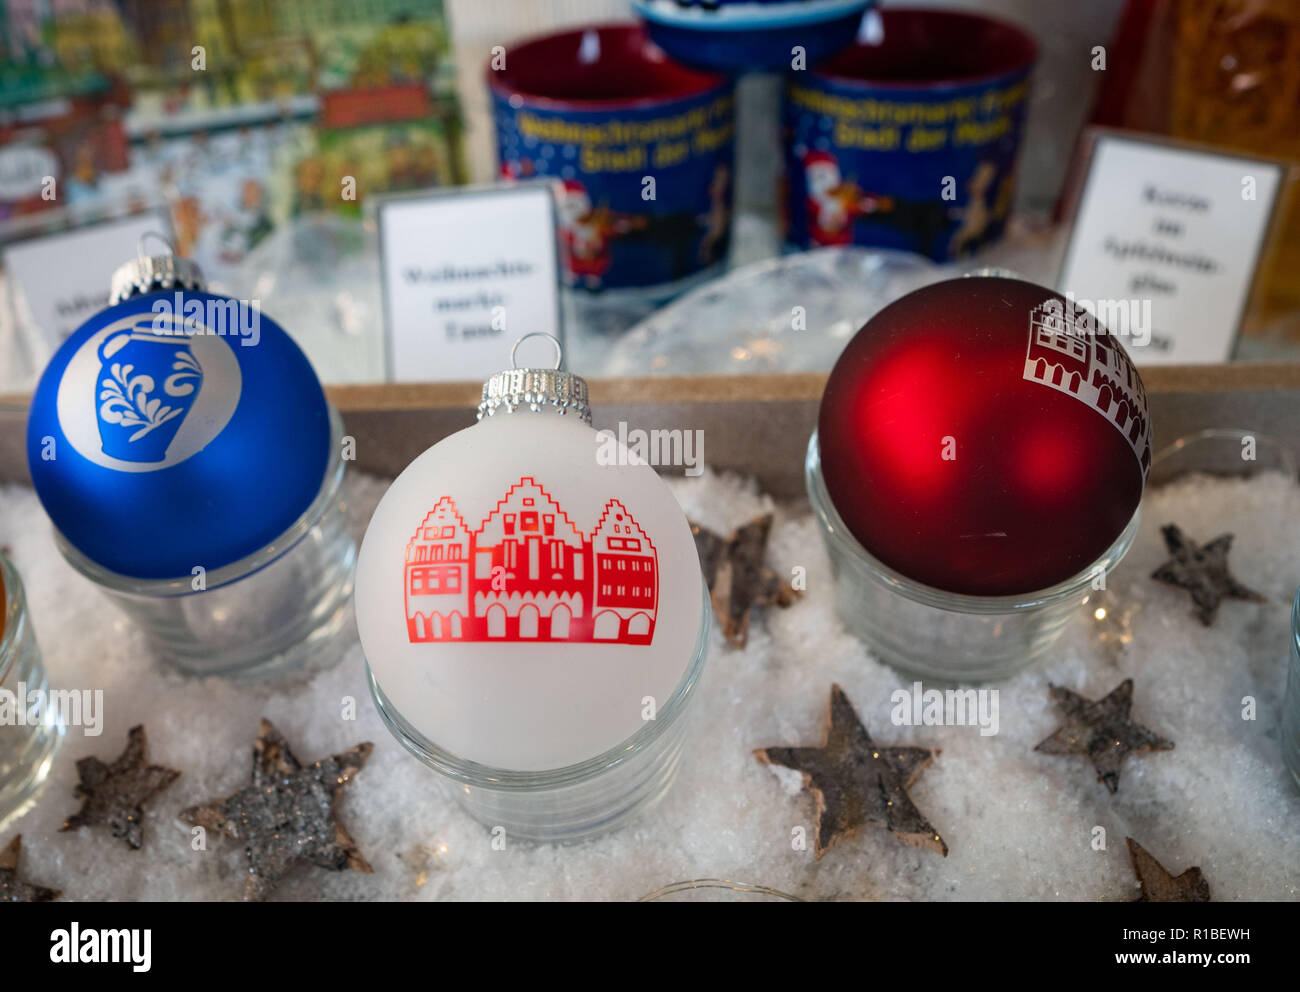 09 November 2018, Hessen, Frankfurt/Main: Christmas baubles with Frankfurt motifs can be bought in a shop on Römerberg. (to dpa 'Cuddling with Frankfurt, drinking watering: City merchandising booms' from 11.11.2018) Photo: Frank Rumpenhorst/dpa - Stock Image